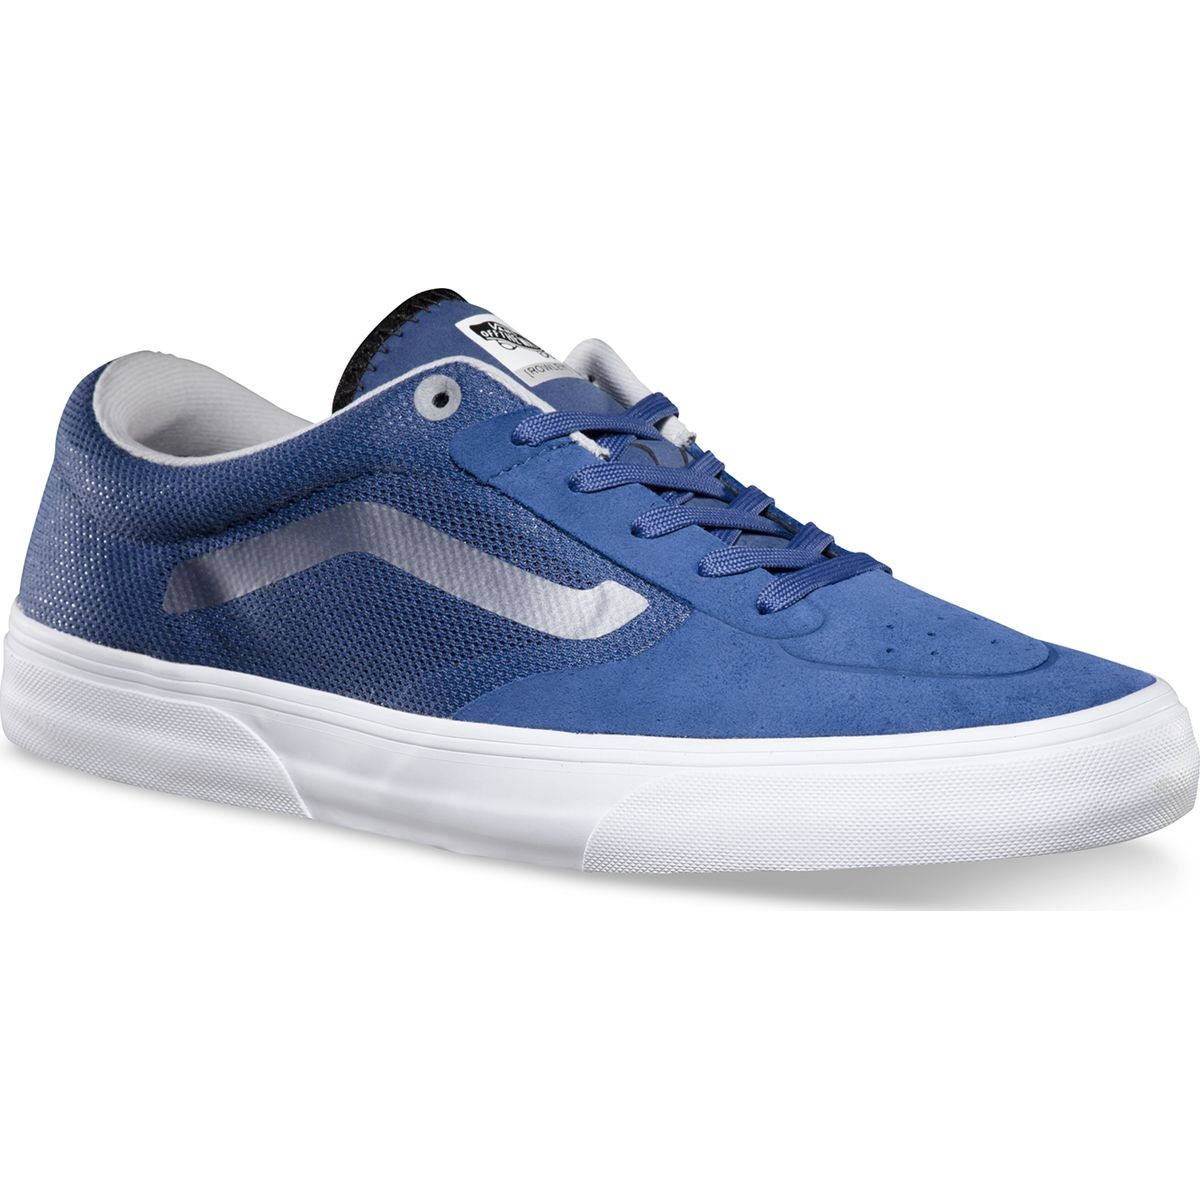 Vans Rowley Pro Lite Shoes - Classic Blue